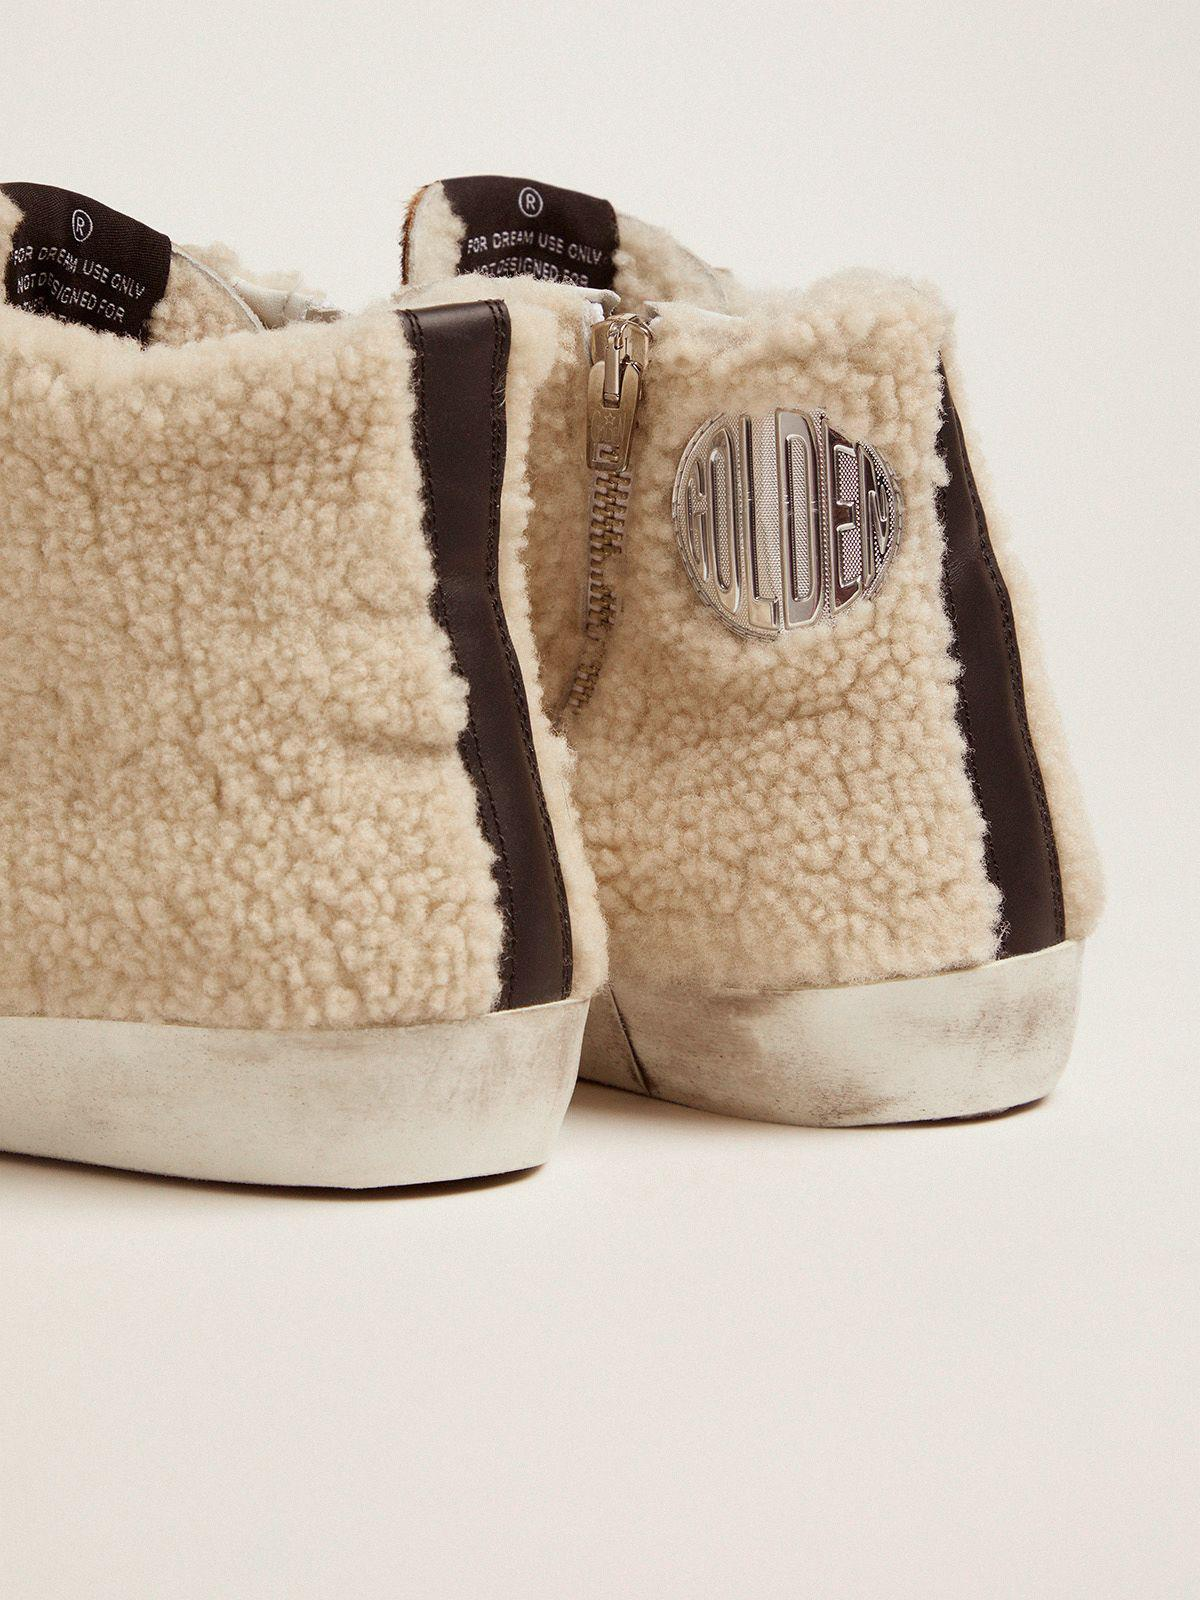 Francy sneakers made of shearling and pony skin with a leopard print 3